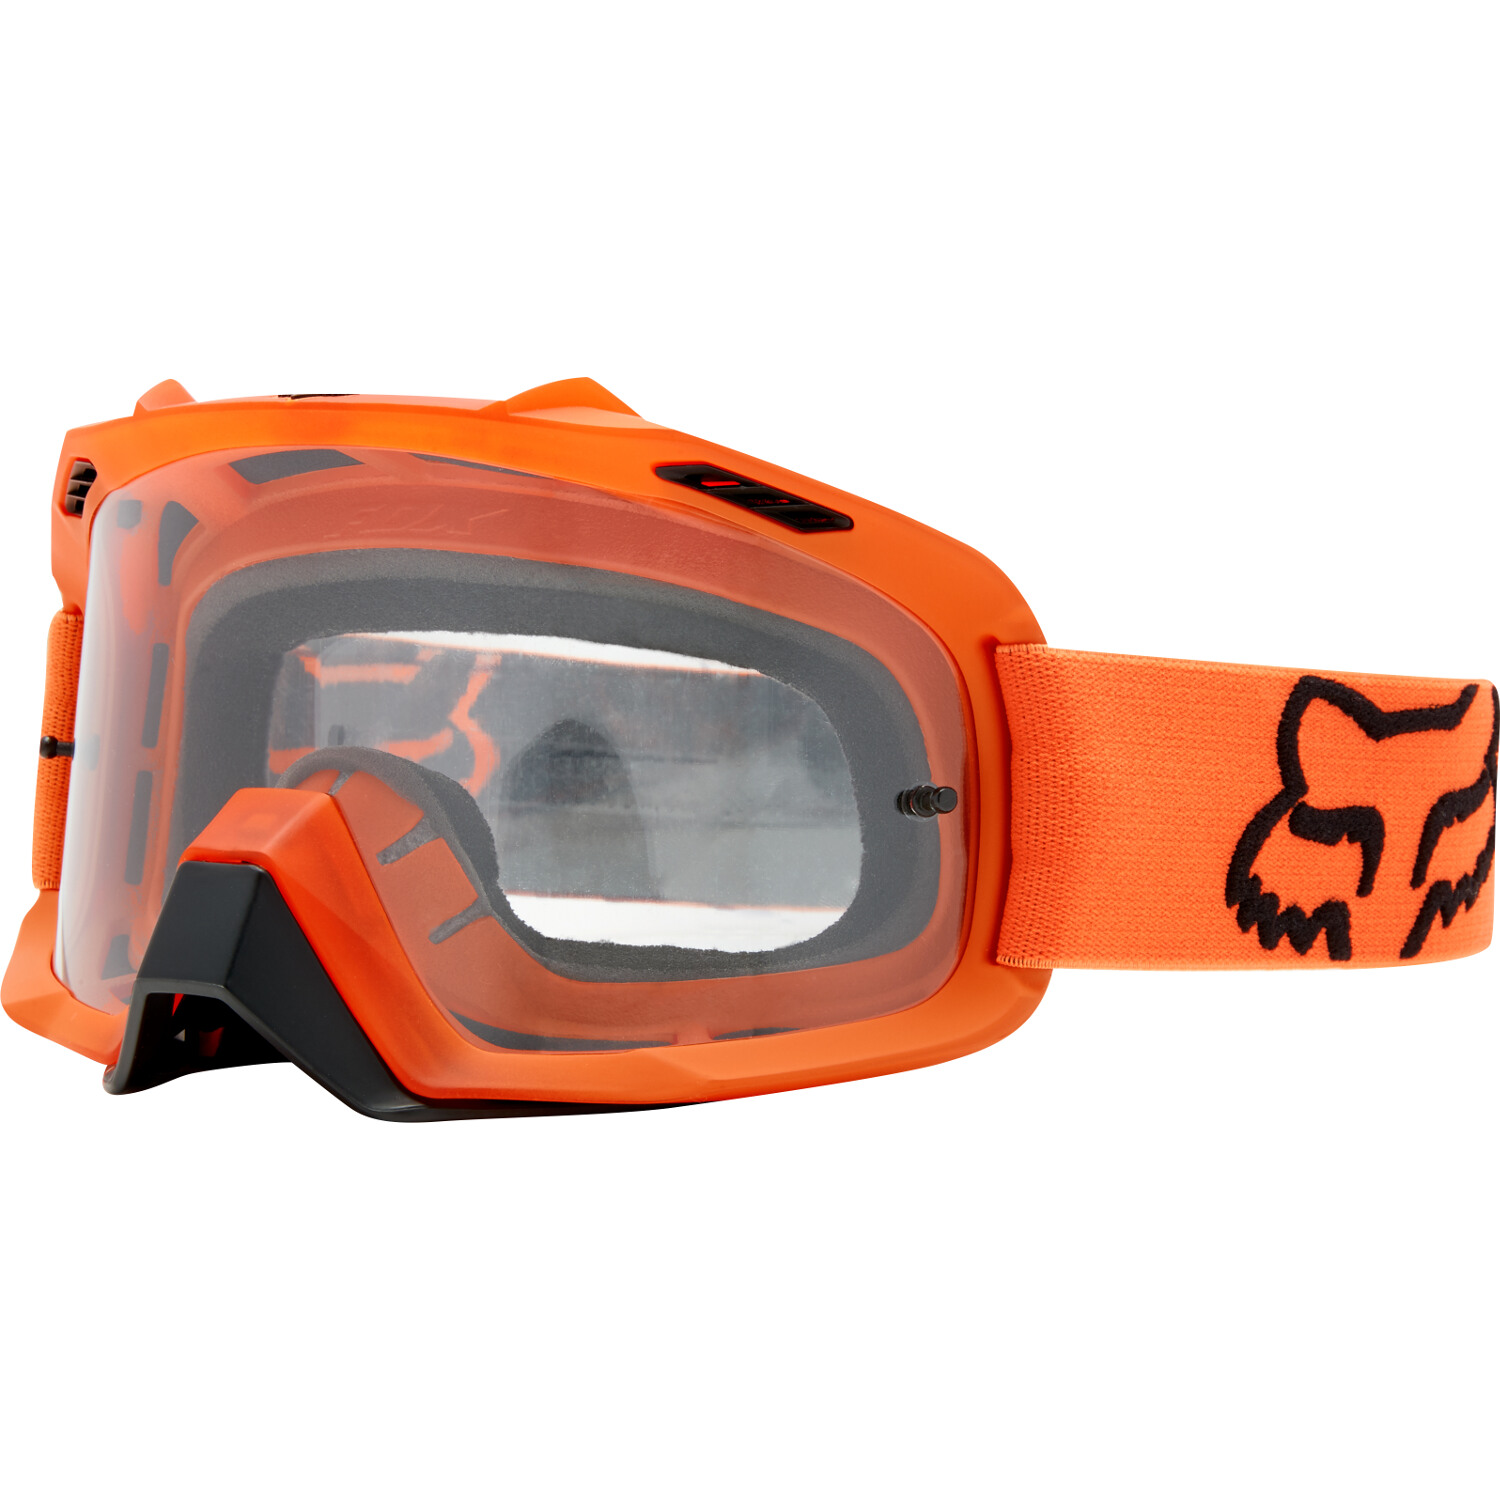 20576-009-OS Fox Racing Air Space Orange Motocross Enduro Off-Road Goggle Masque Brille Crossbril